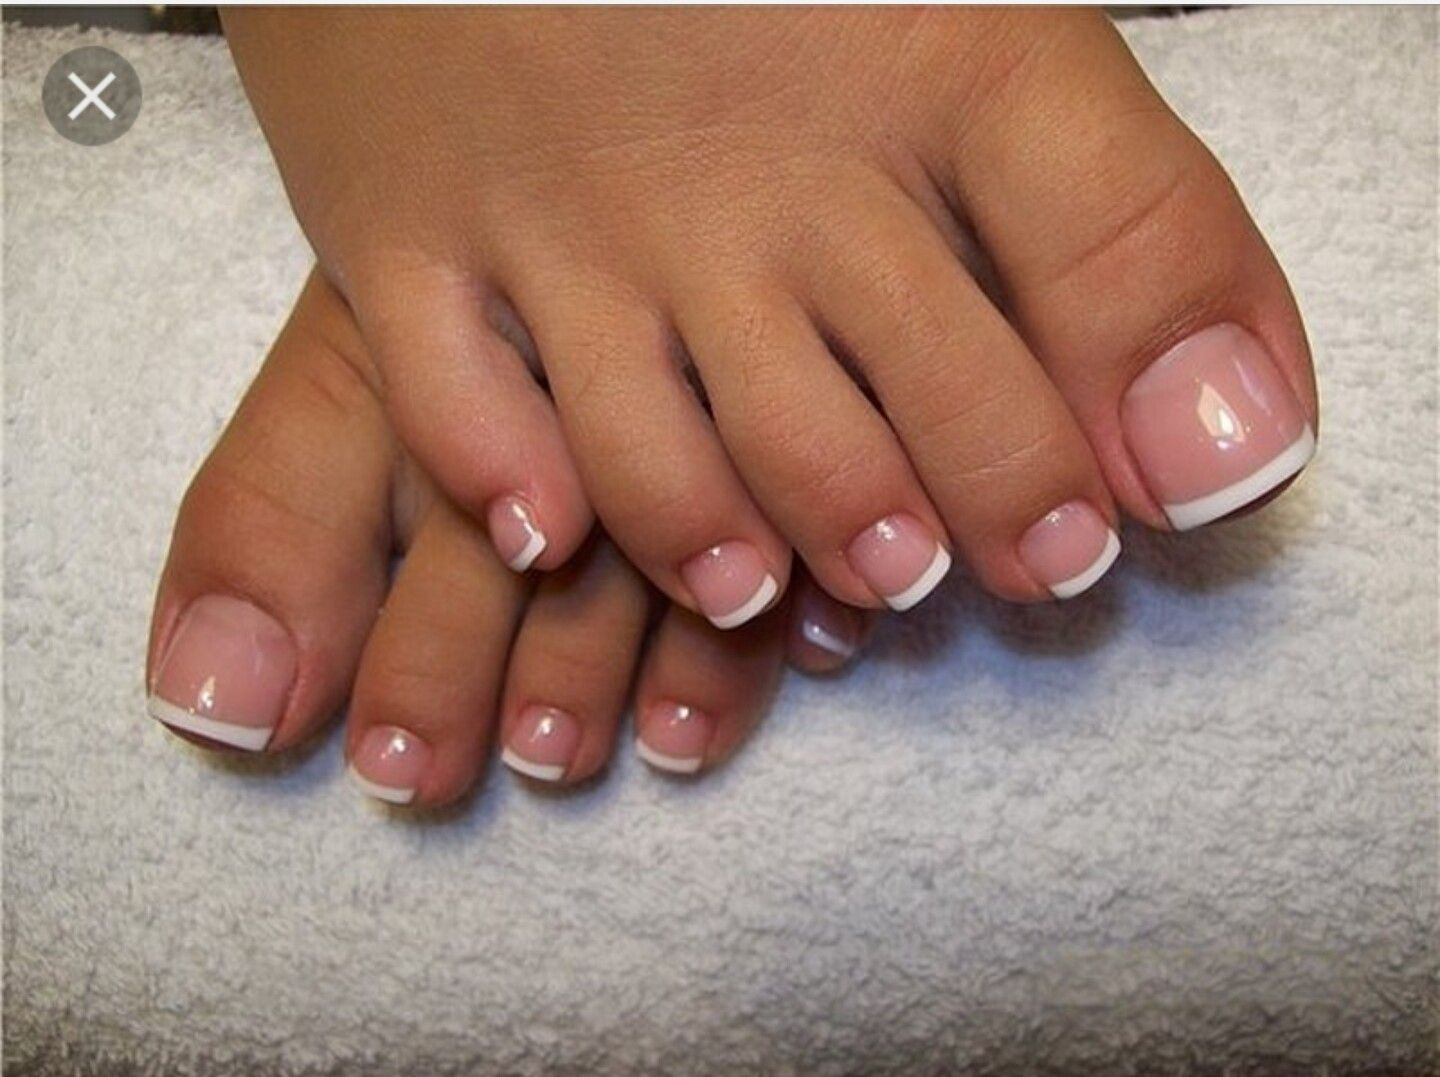 Pin by DiamondLoveXox Perfection on toe nails   Pinterest   Pretty toes